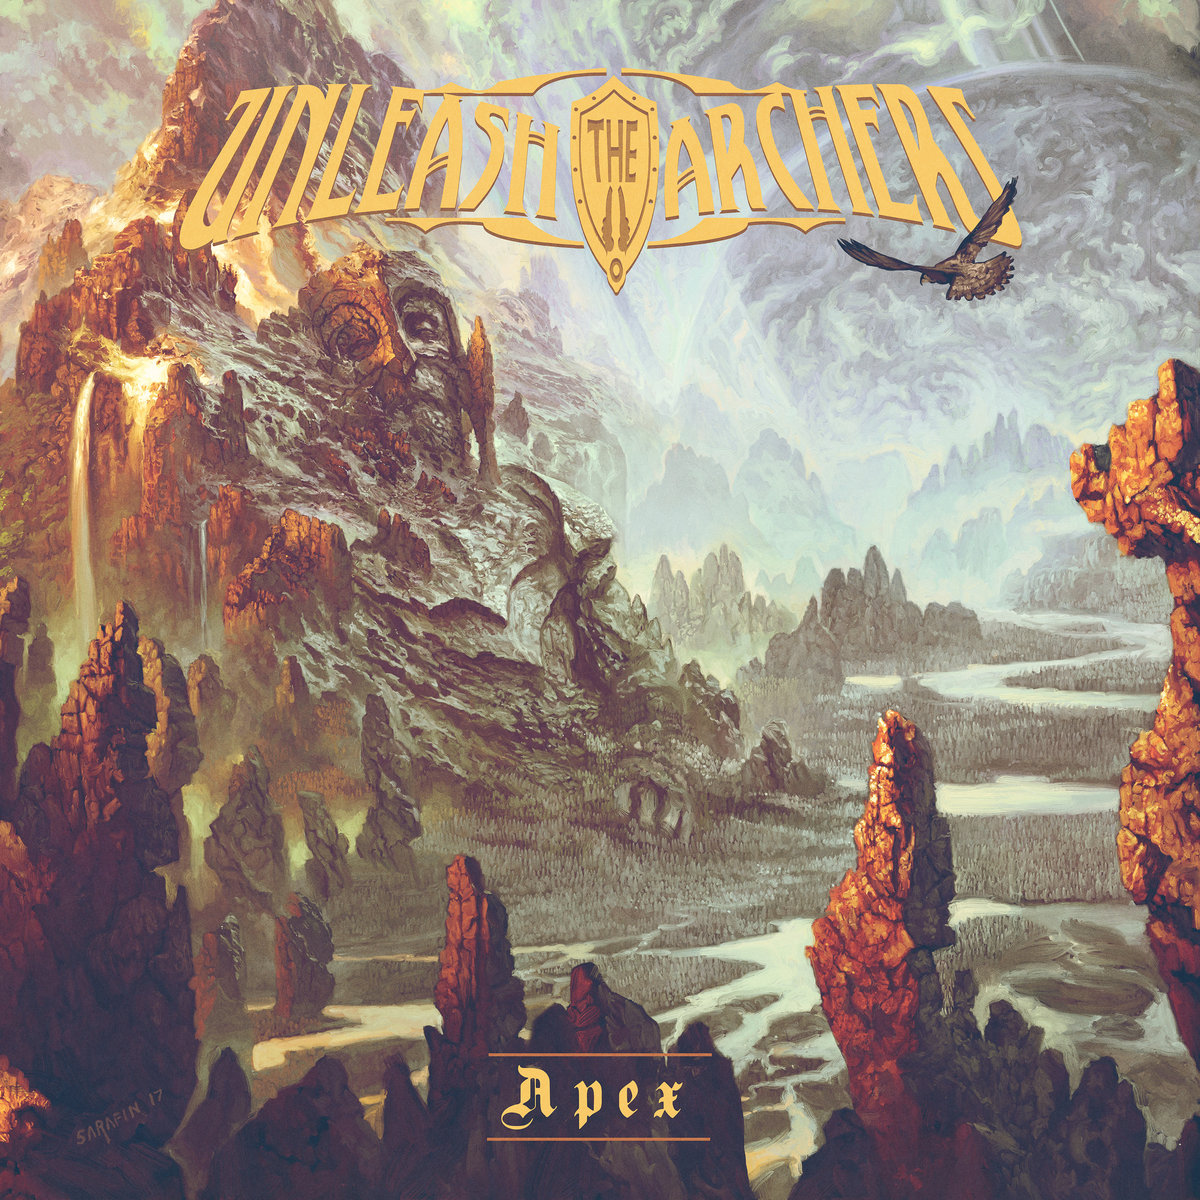 Unleash the Archers – Apex